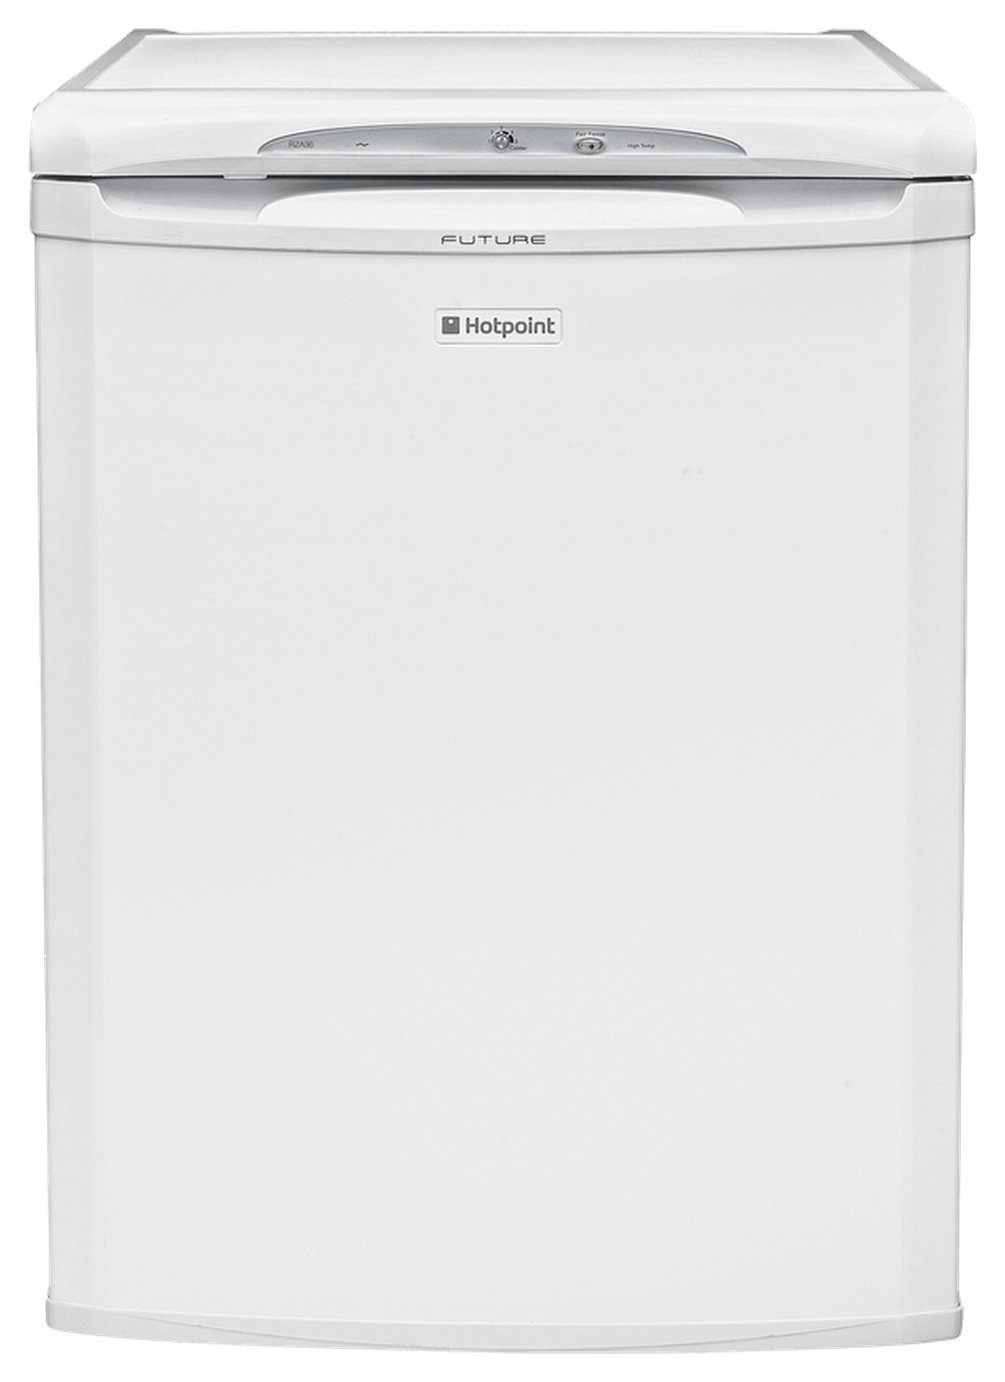 Hotpoint RZA36P.1 Freestanding Under Counter Freezer - White from Hotpoint